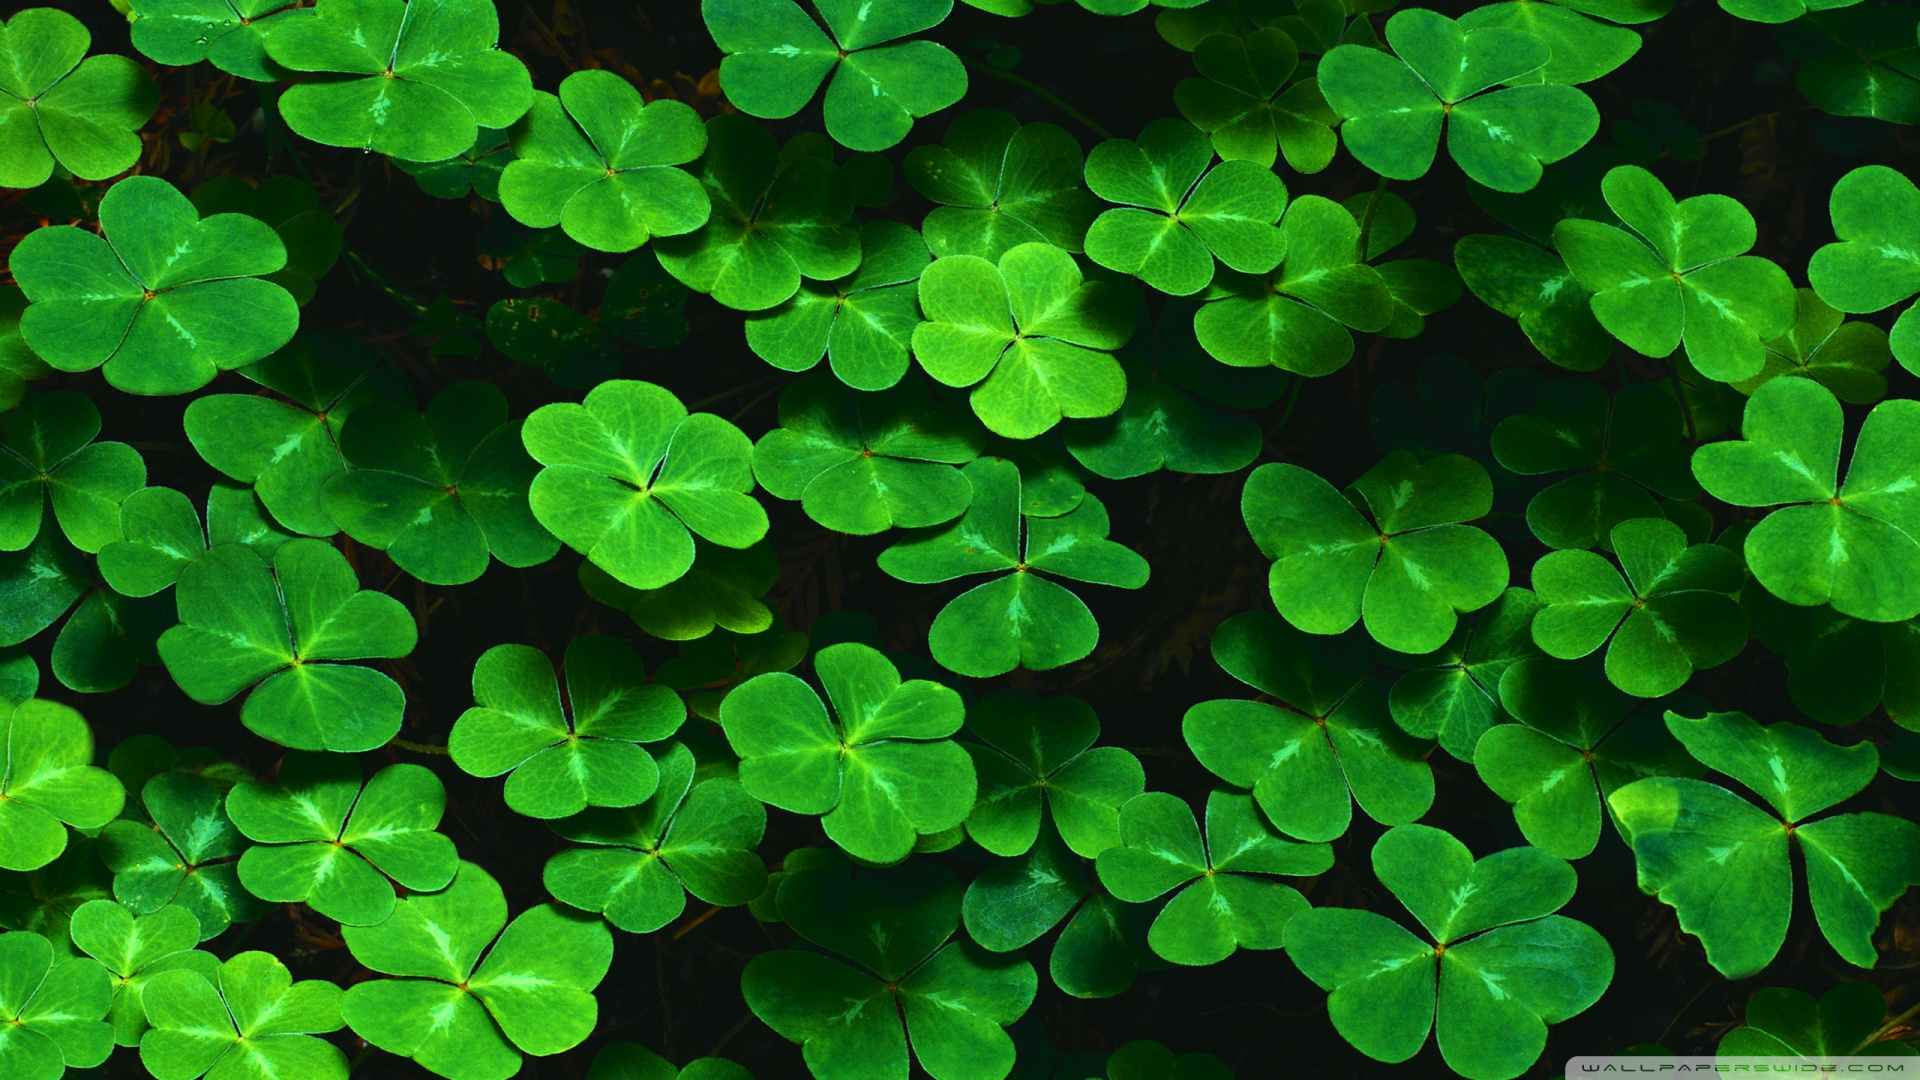 Irish Clover Background Irish clover b 1920x1080